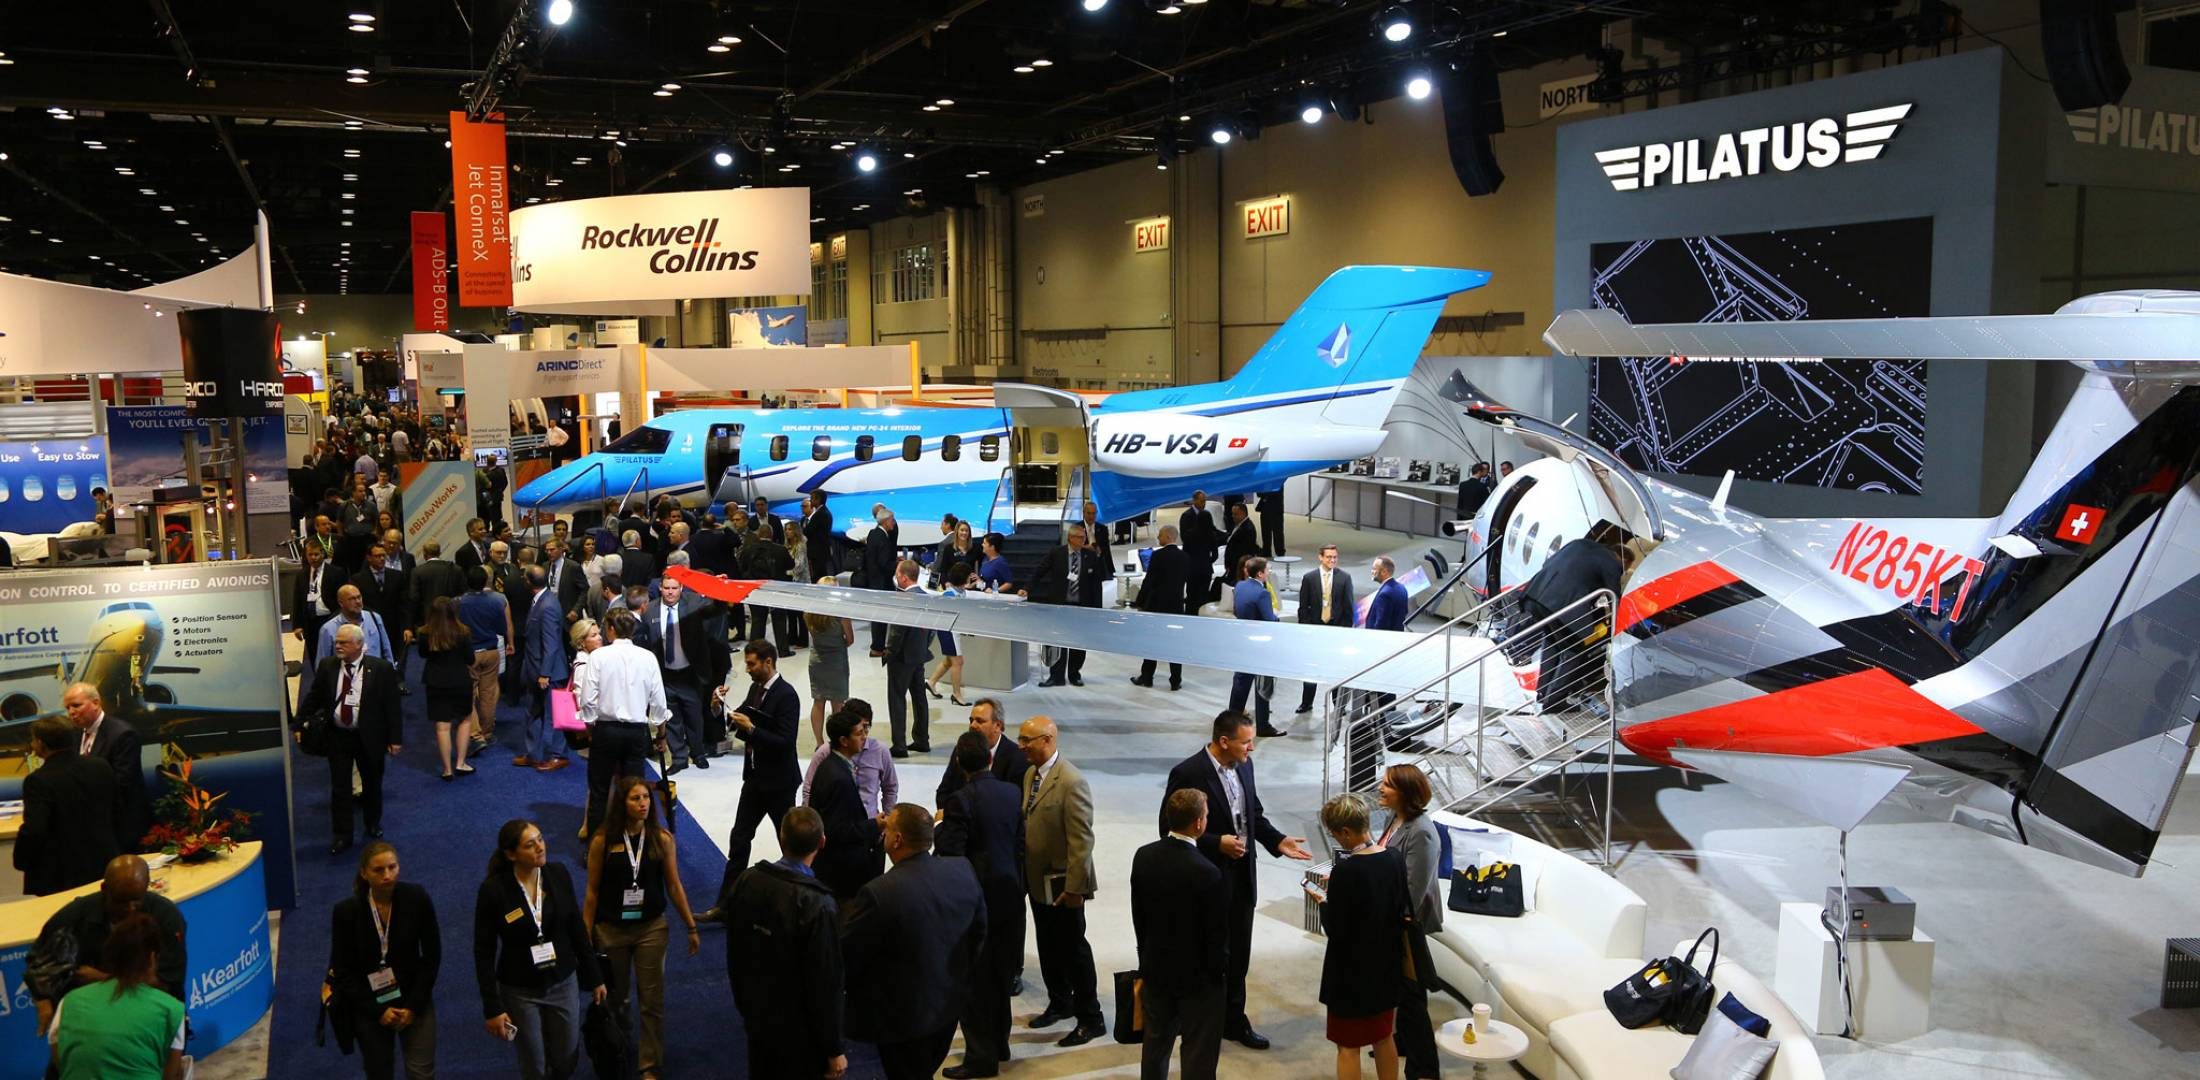 2nd image for the NBAA article in the newsletter.jpg